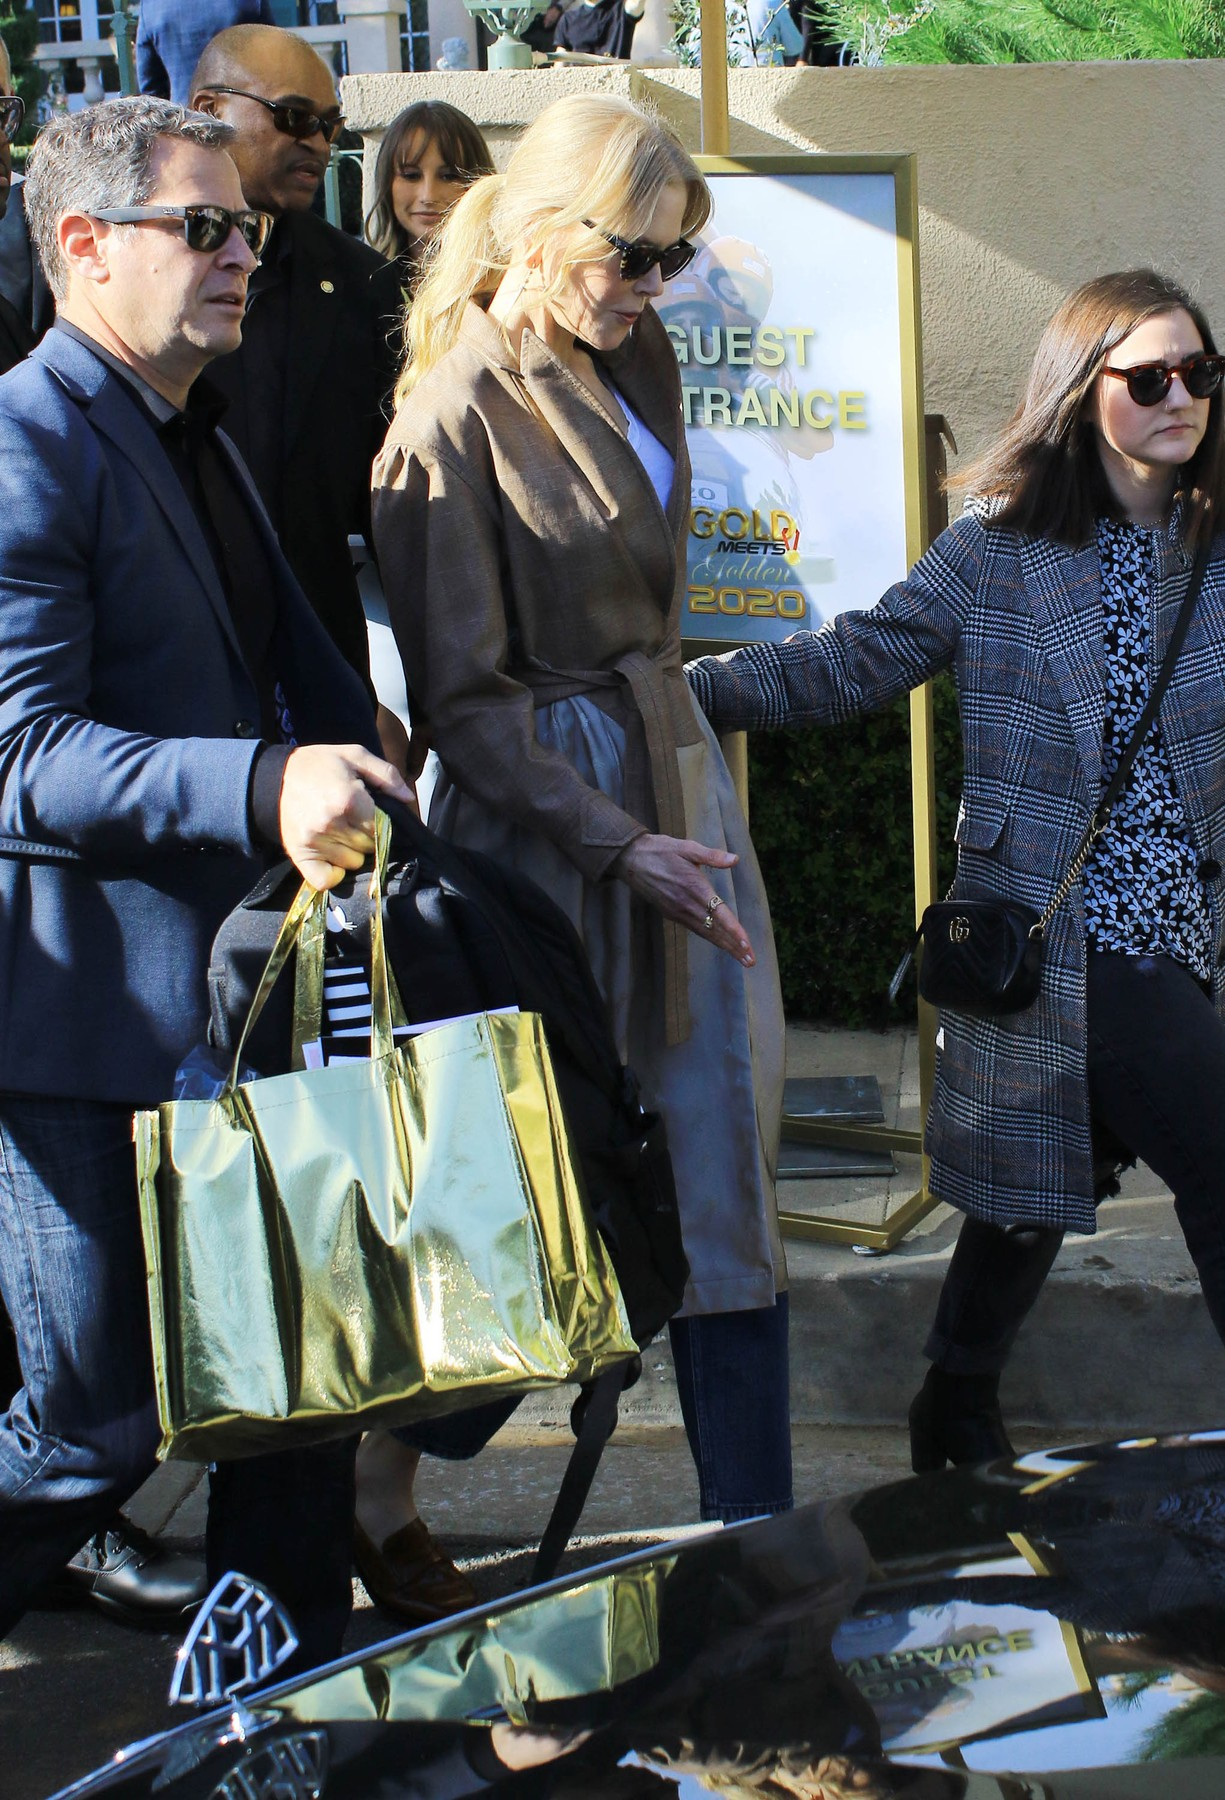 Nicole Kidman is seen in Los Angeles, CA., Image: 491042051, License: Rights-managed, Restrictions: , Model Release: no, Credit line: gotpap / StarMax / Profimedia